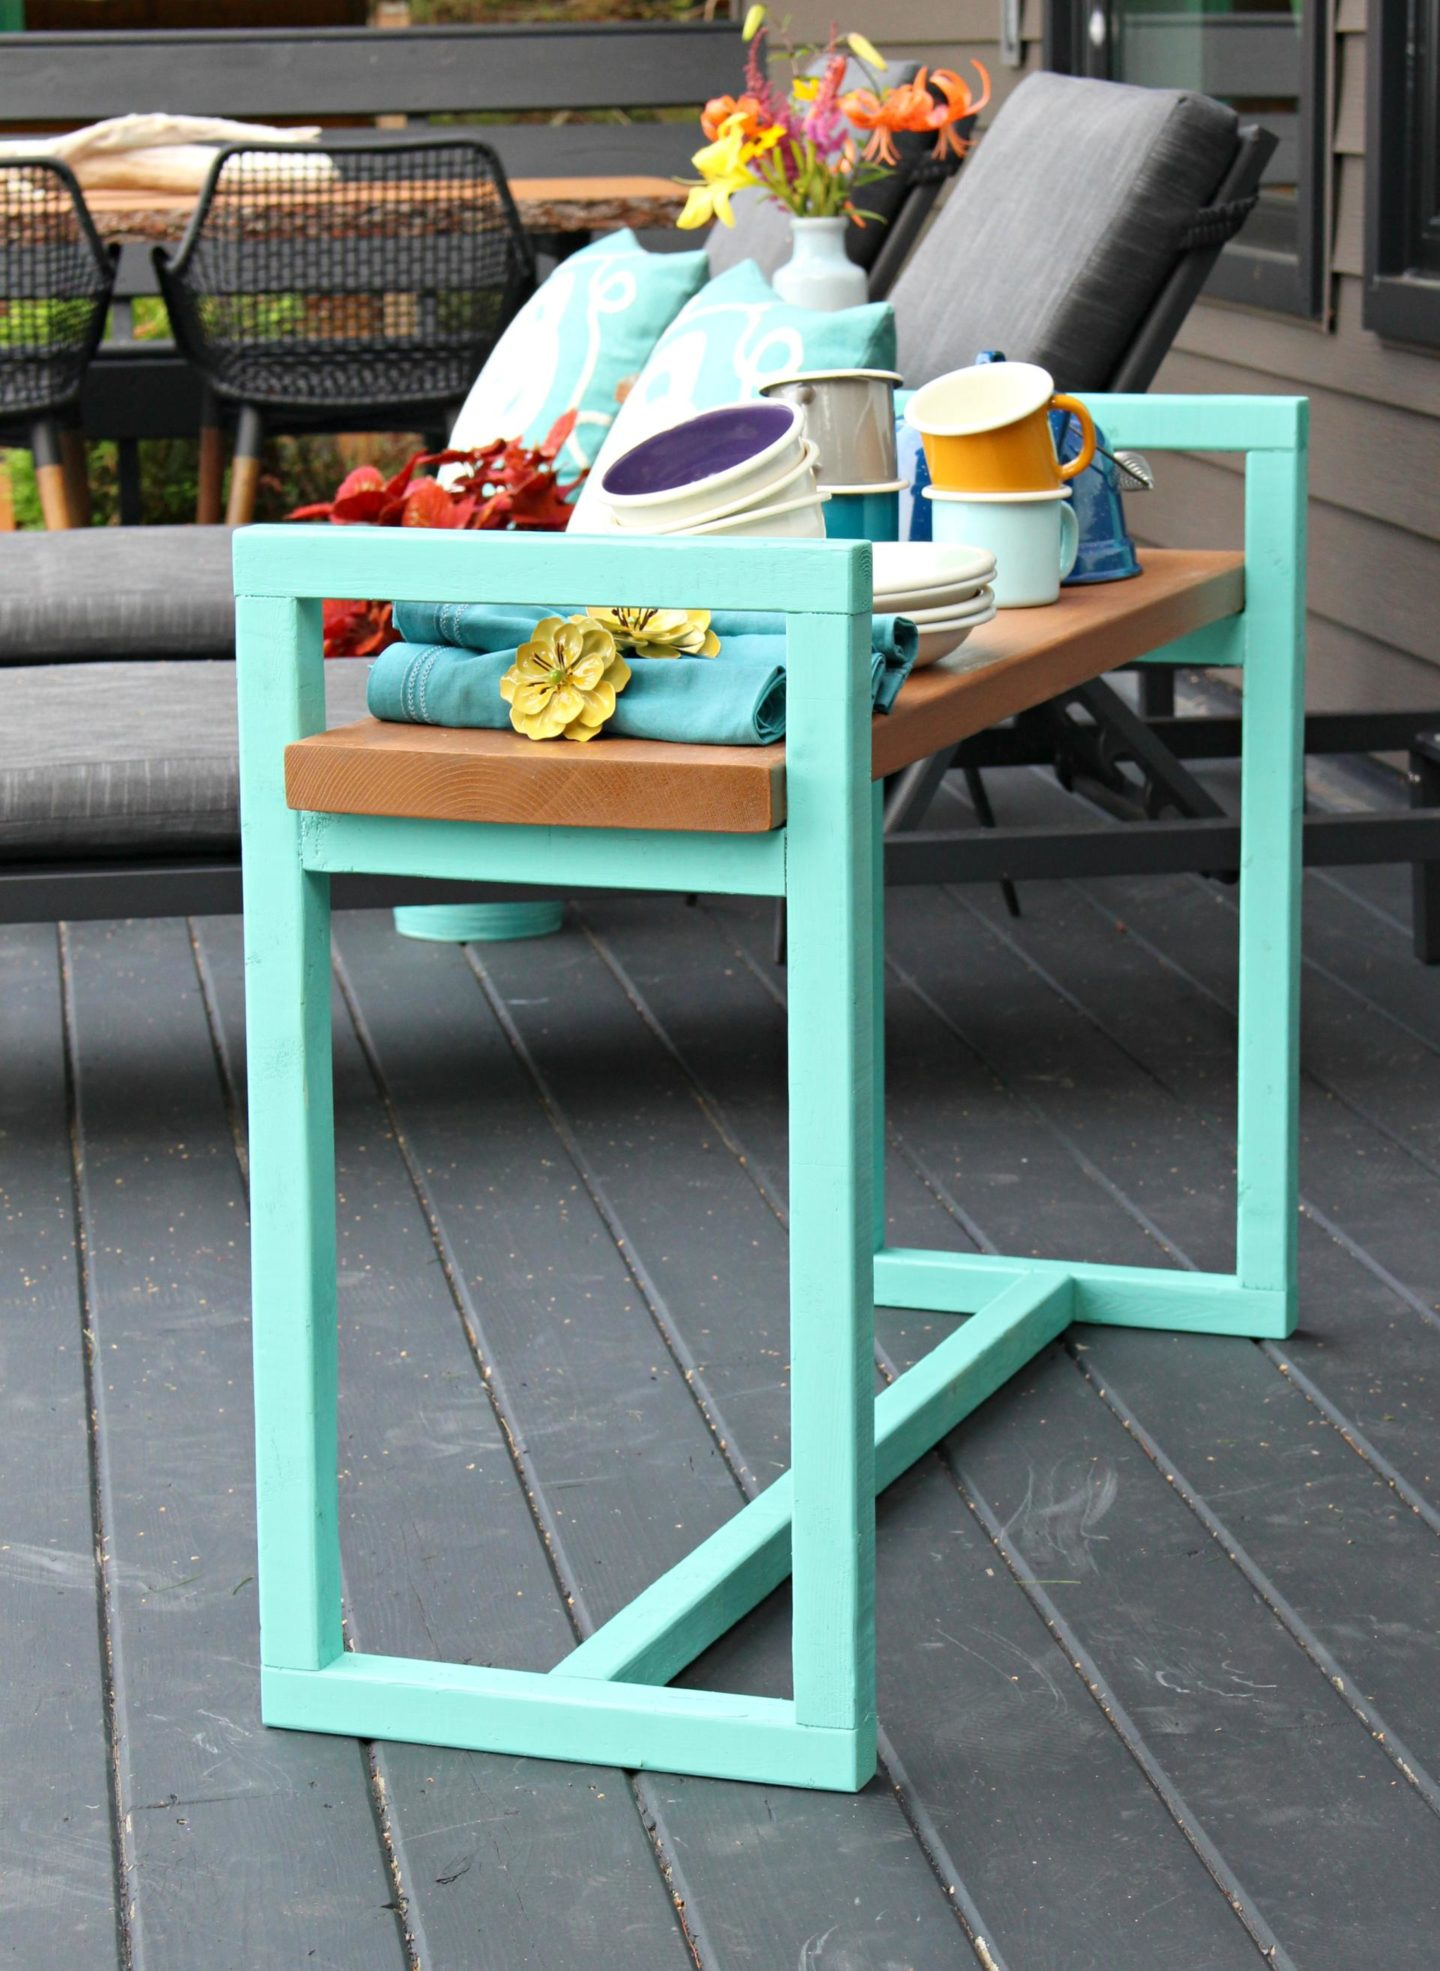 Beginner DIY Wood Bench Project for Outdoors | Easy DIY Bench with Minimal Tools (Sponsored by The Home Depot Canada)